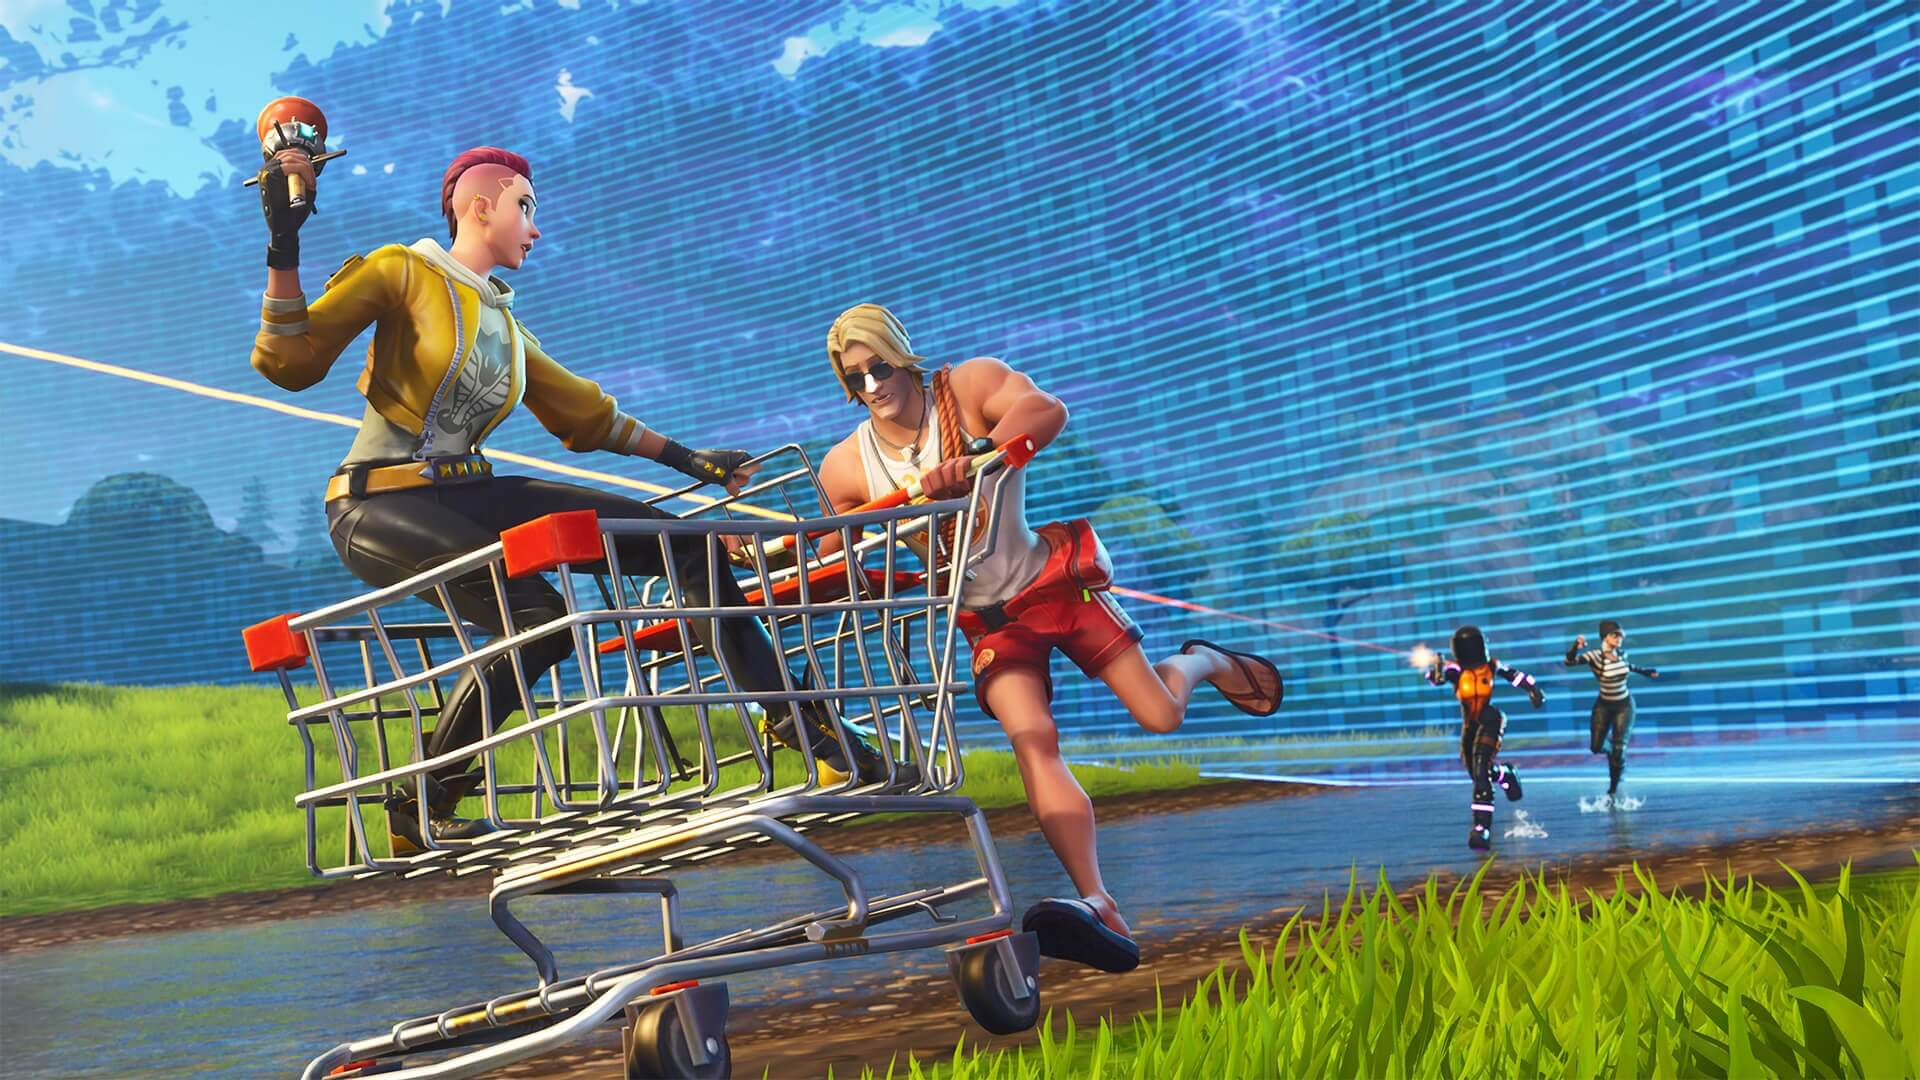 How To Cheat Fortnite Save The World Fortnite S Co Op Mode Save The World Will Not Be Free To Play This Year Techspot